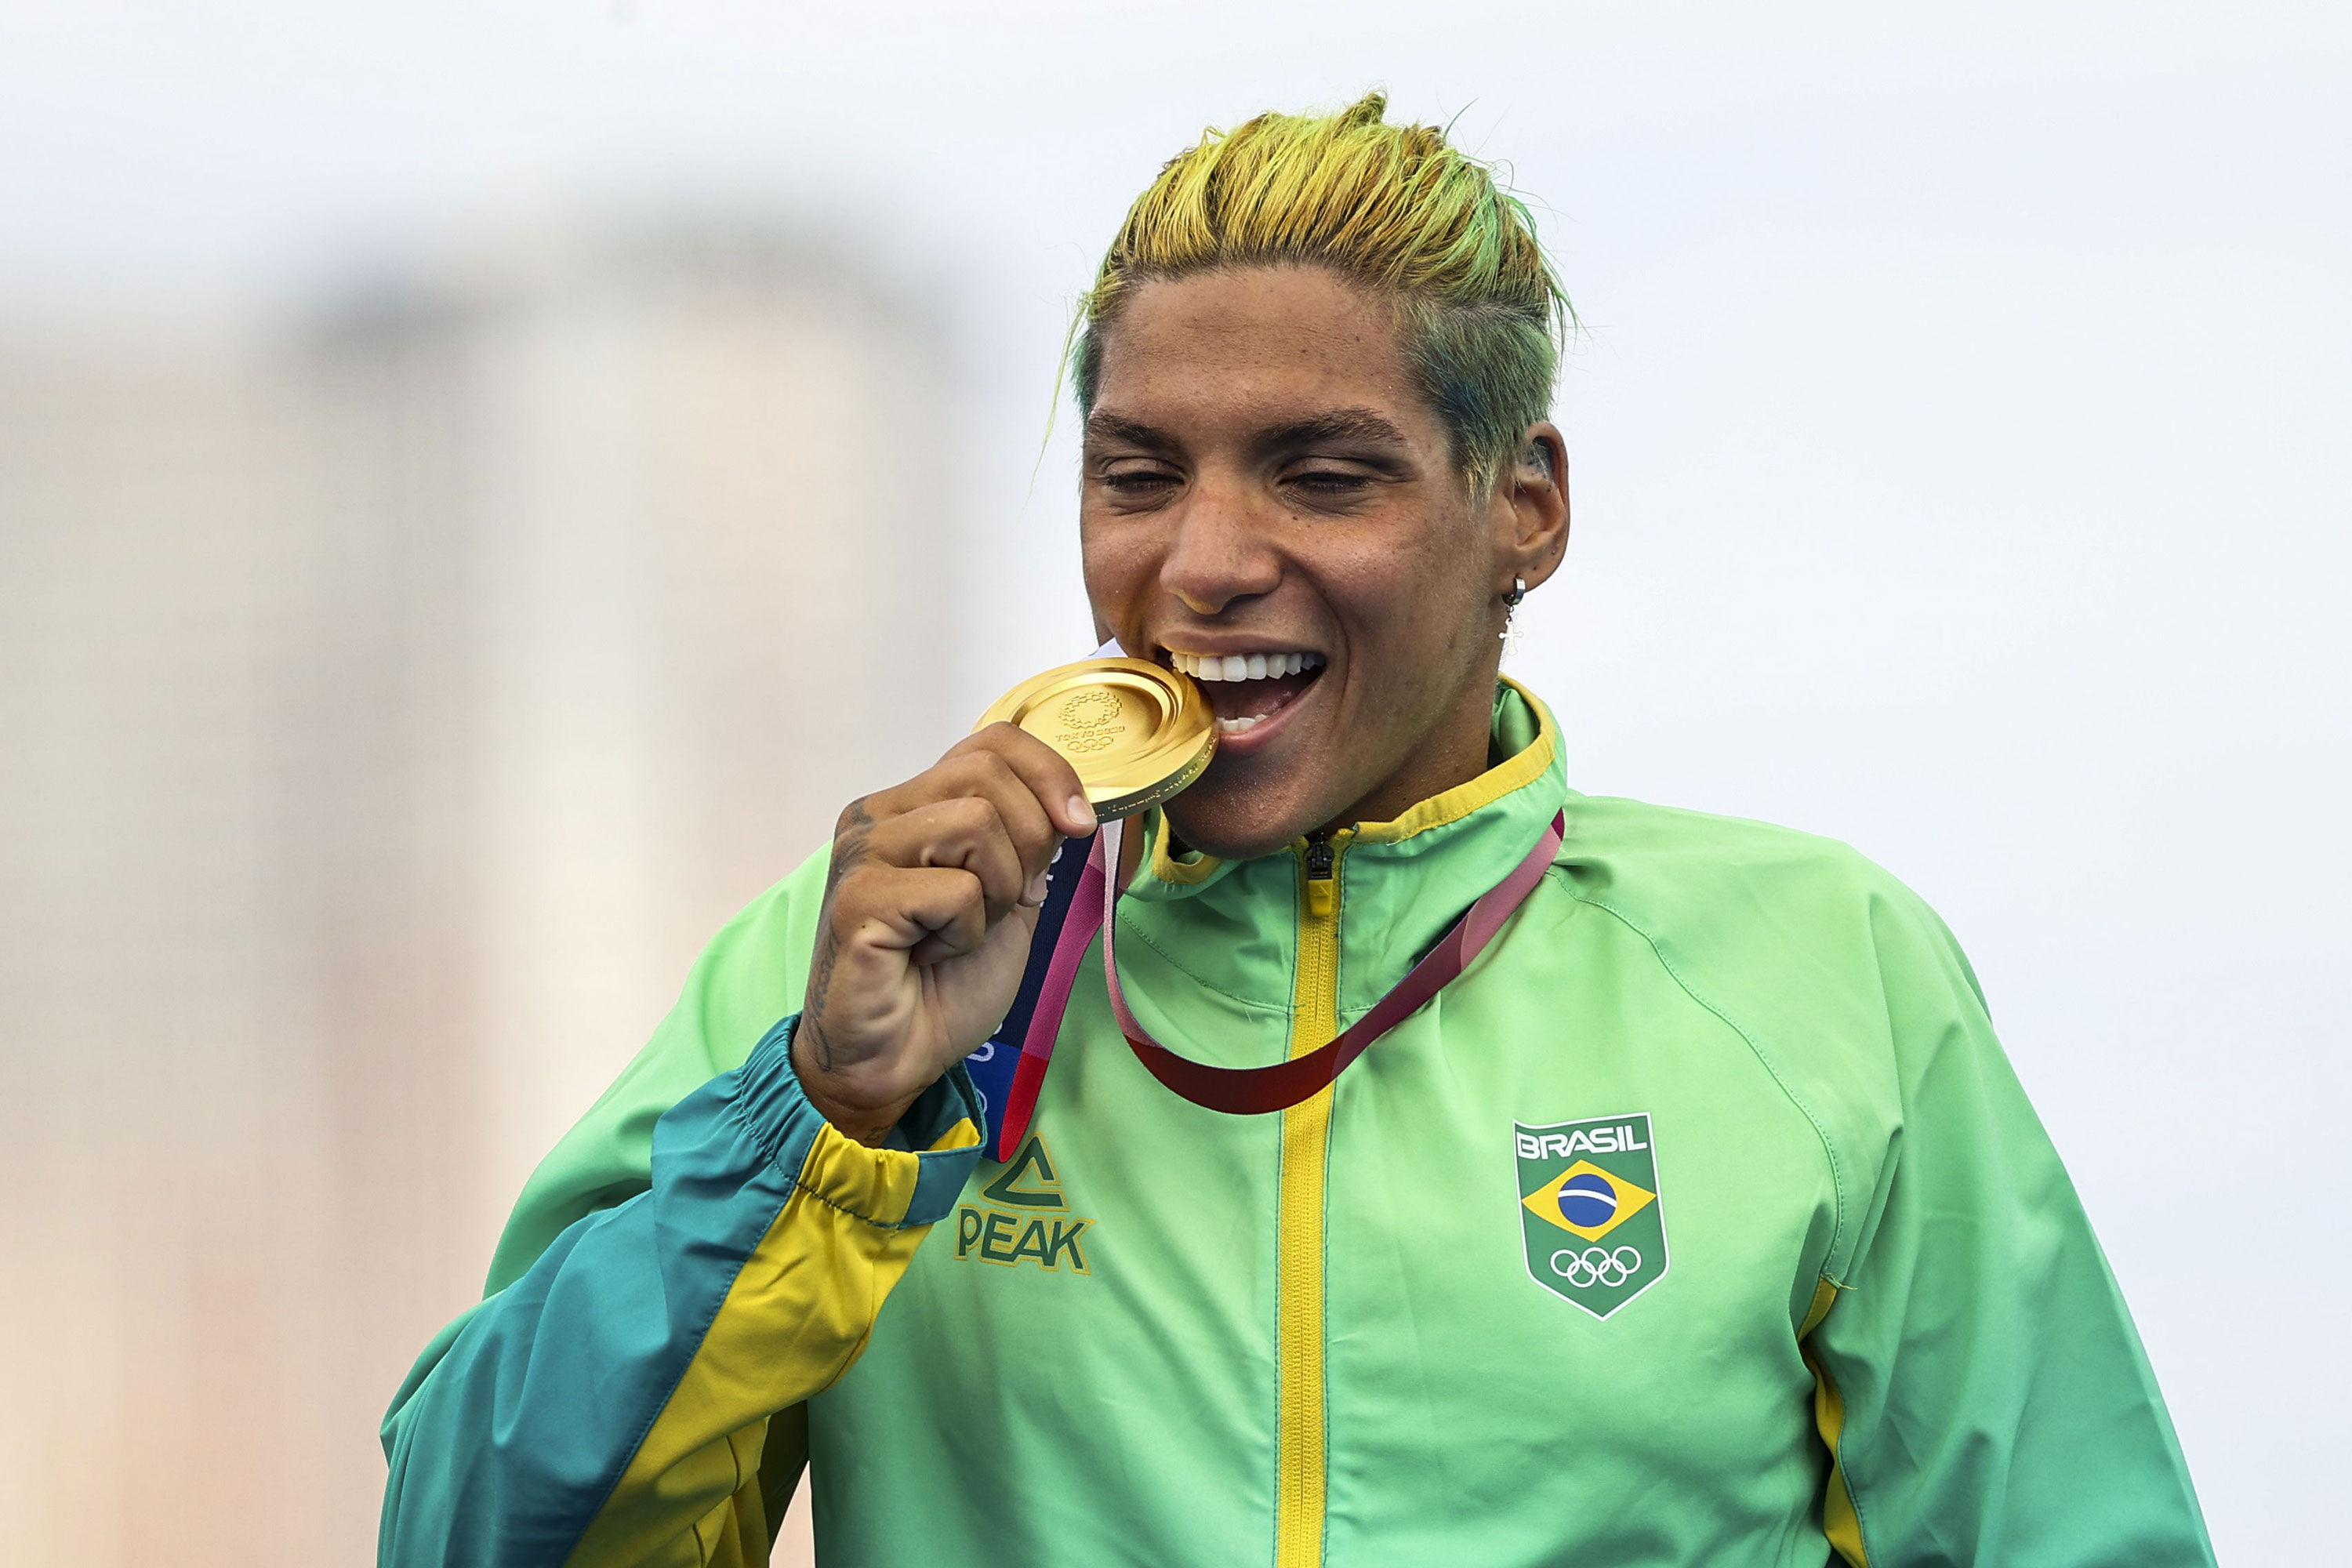 Ana Marcela Cunha of Brazil celebrates her gold medal win in the 10 kilometer swimming event on August 4.